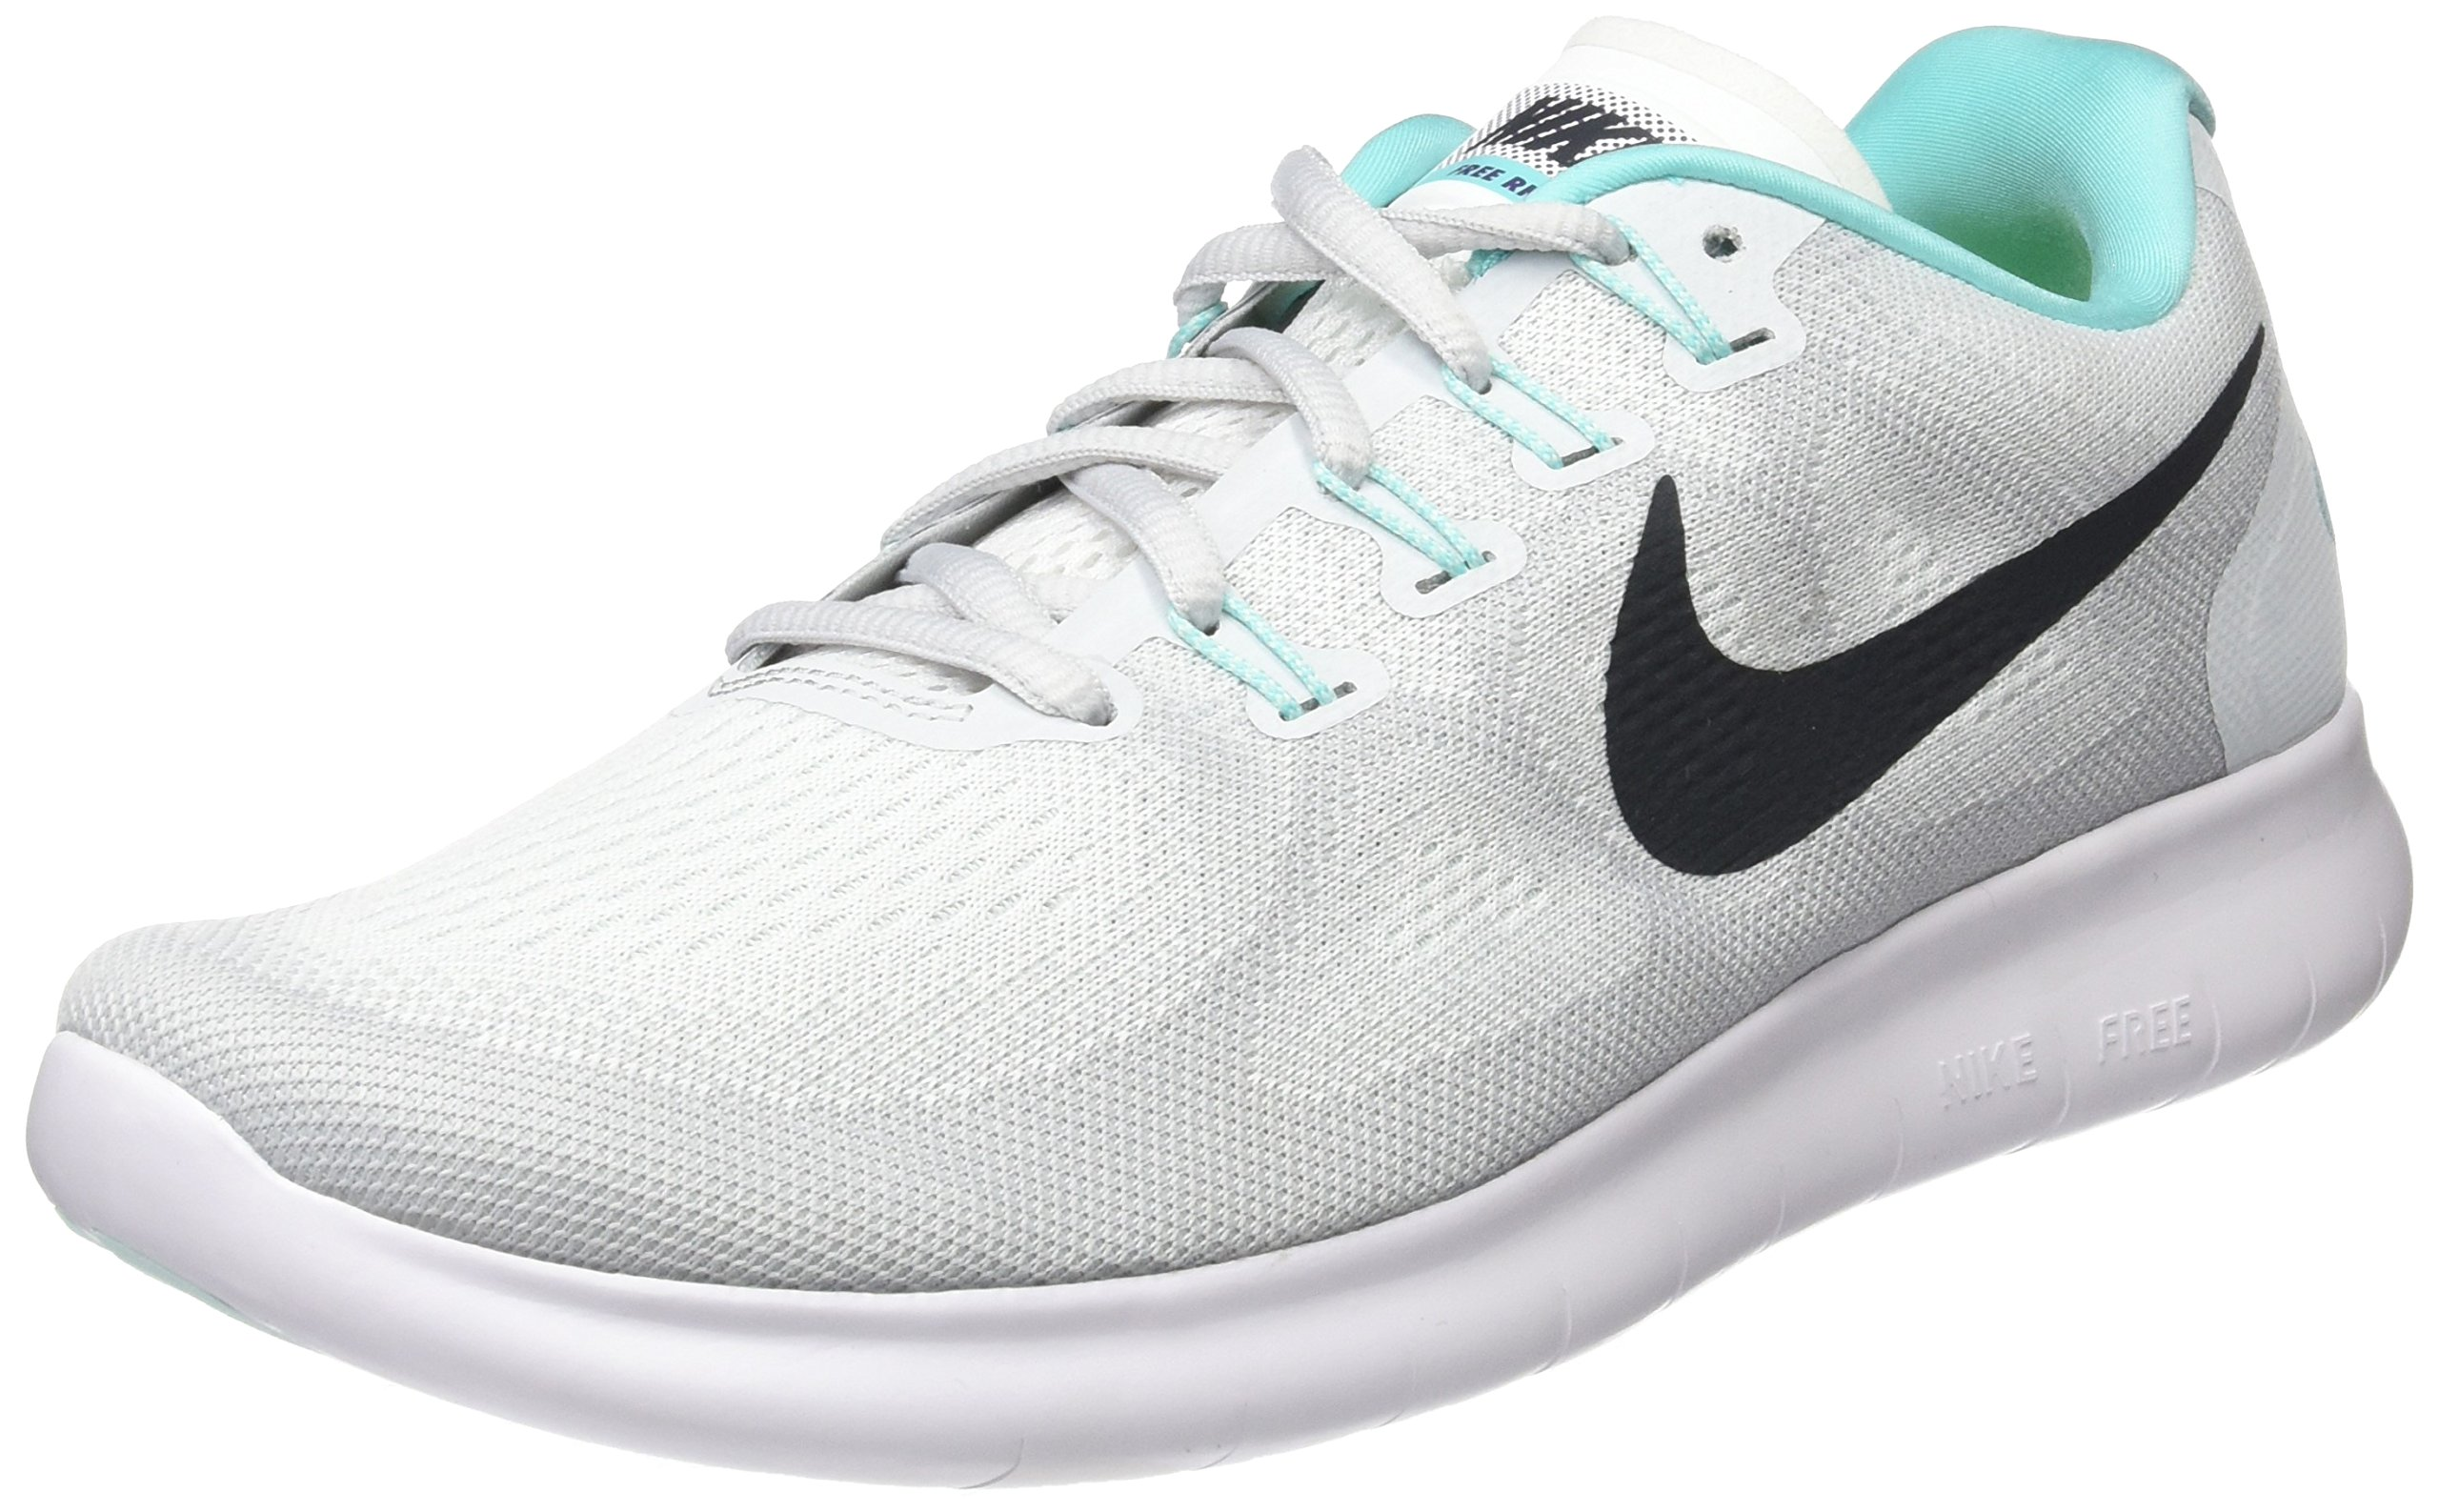 b8ee6aae7730c Galleon - Nike Women s Free RN 2017 Running Shoe White Anthracite Pure  Platinum Size 9 M US